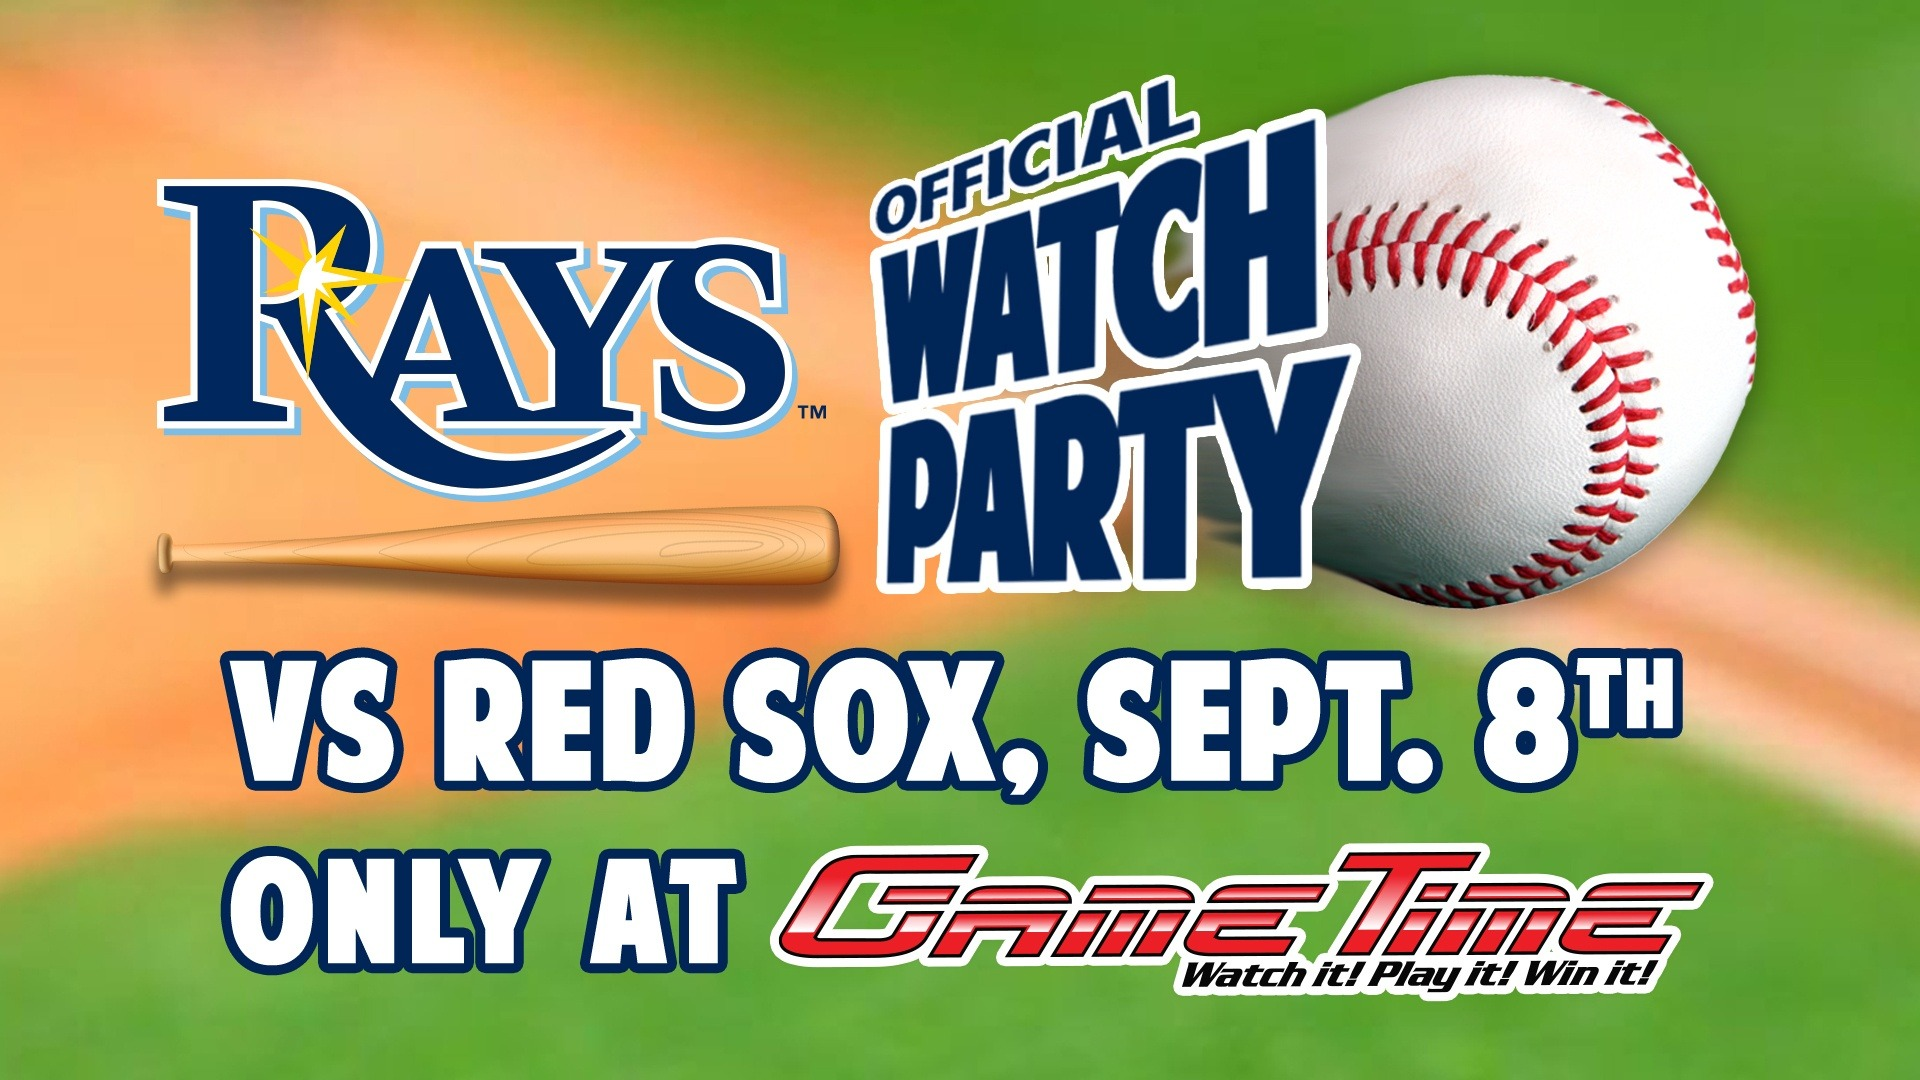 Tampa-Bay-Rays-Watch-Party-HDTV-9-8-17